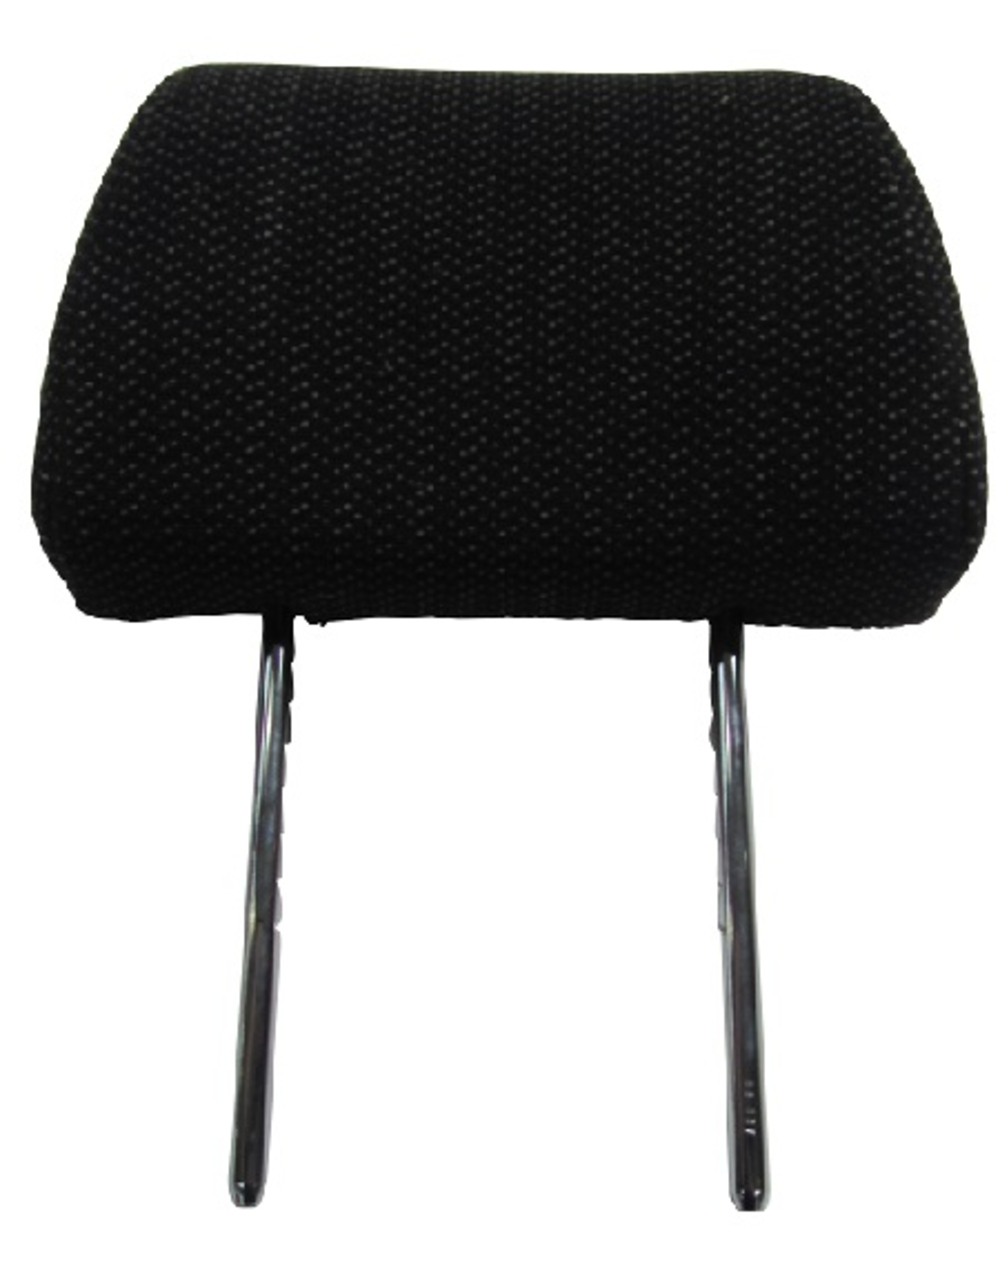 Grammer Actimo M Head Rest